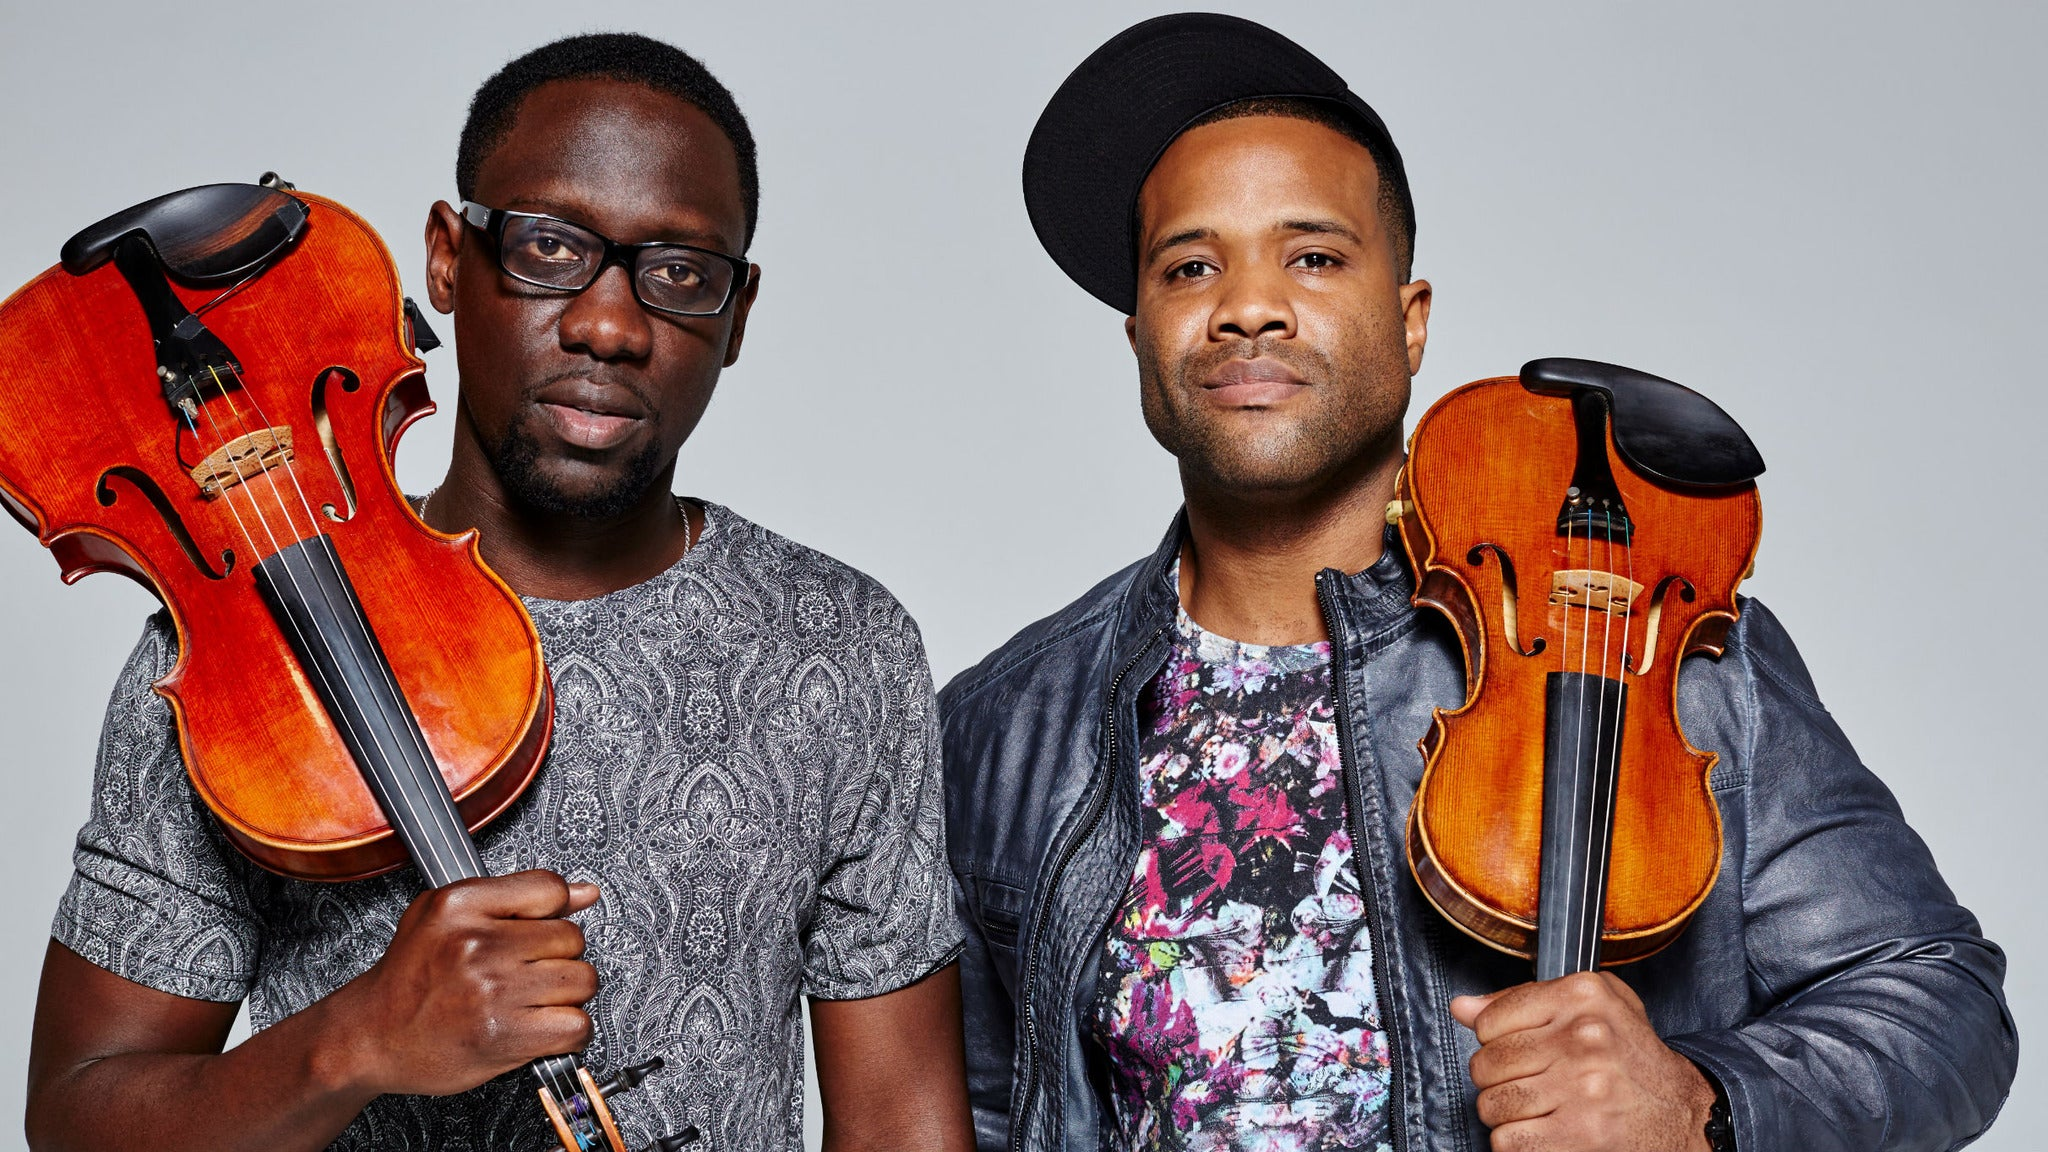 Black Violin at Chandler Center for the Arts